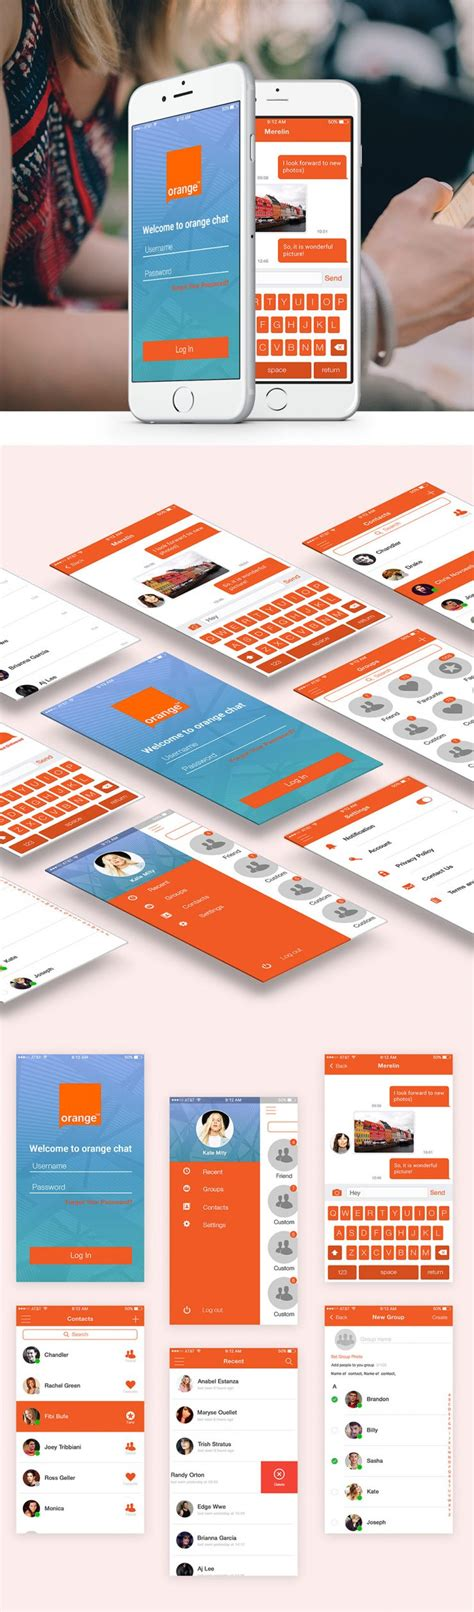 chat mobile free mobile chat application ui design free psd set psd